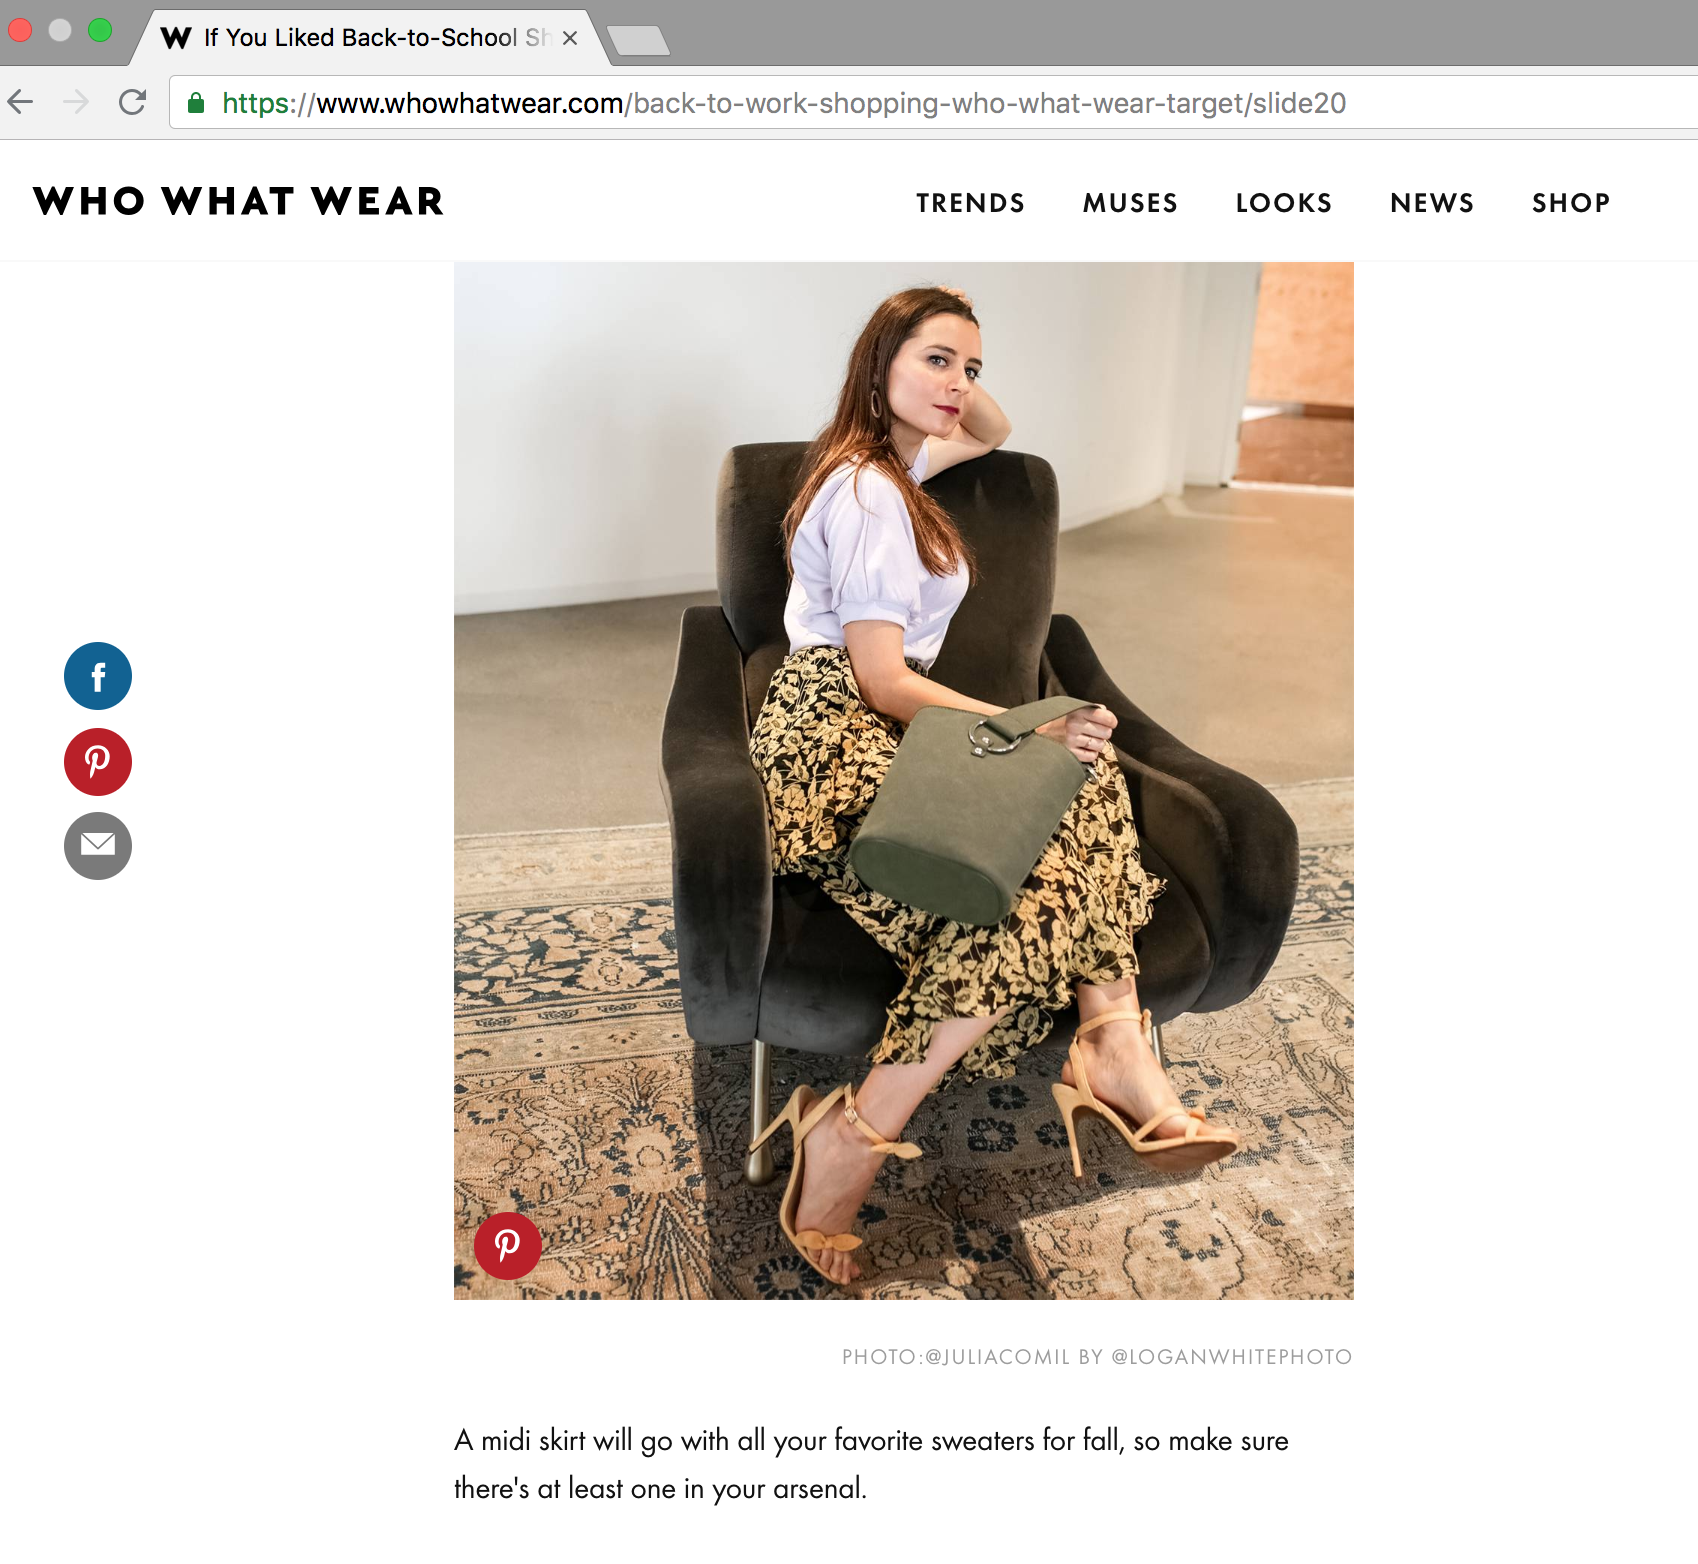 julia comil - who what wear back to work look fall as seen first on whowhatwear